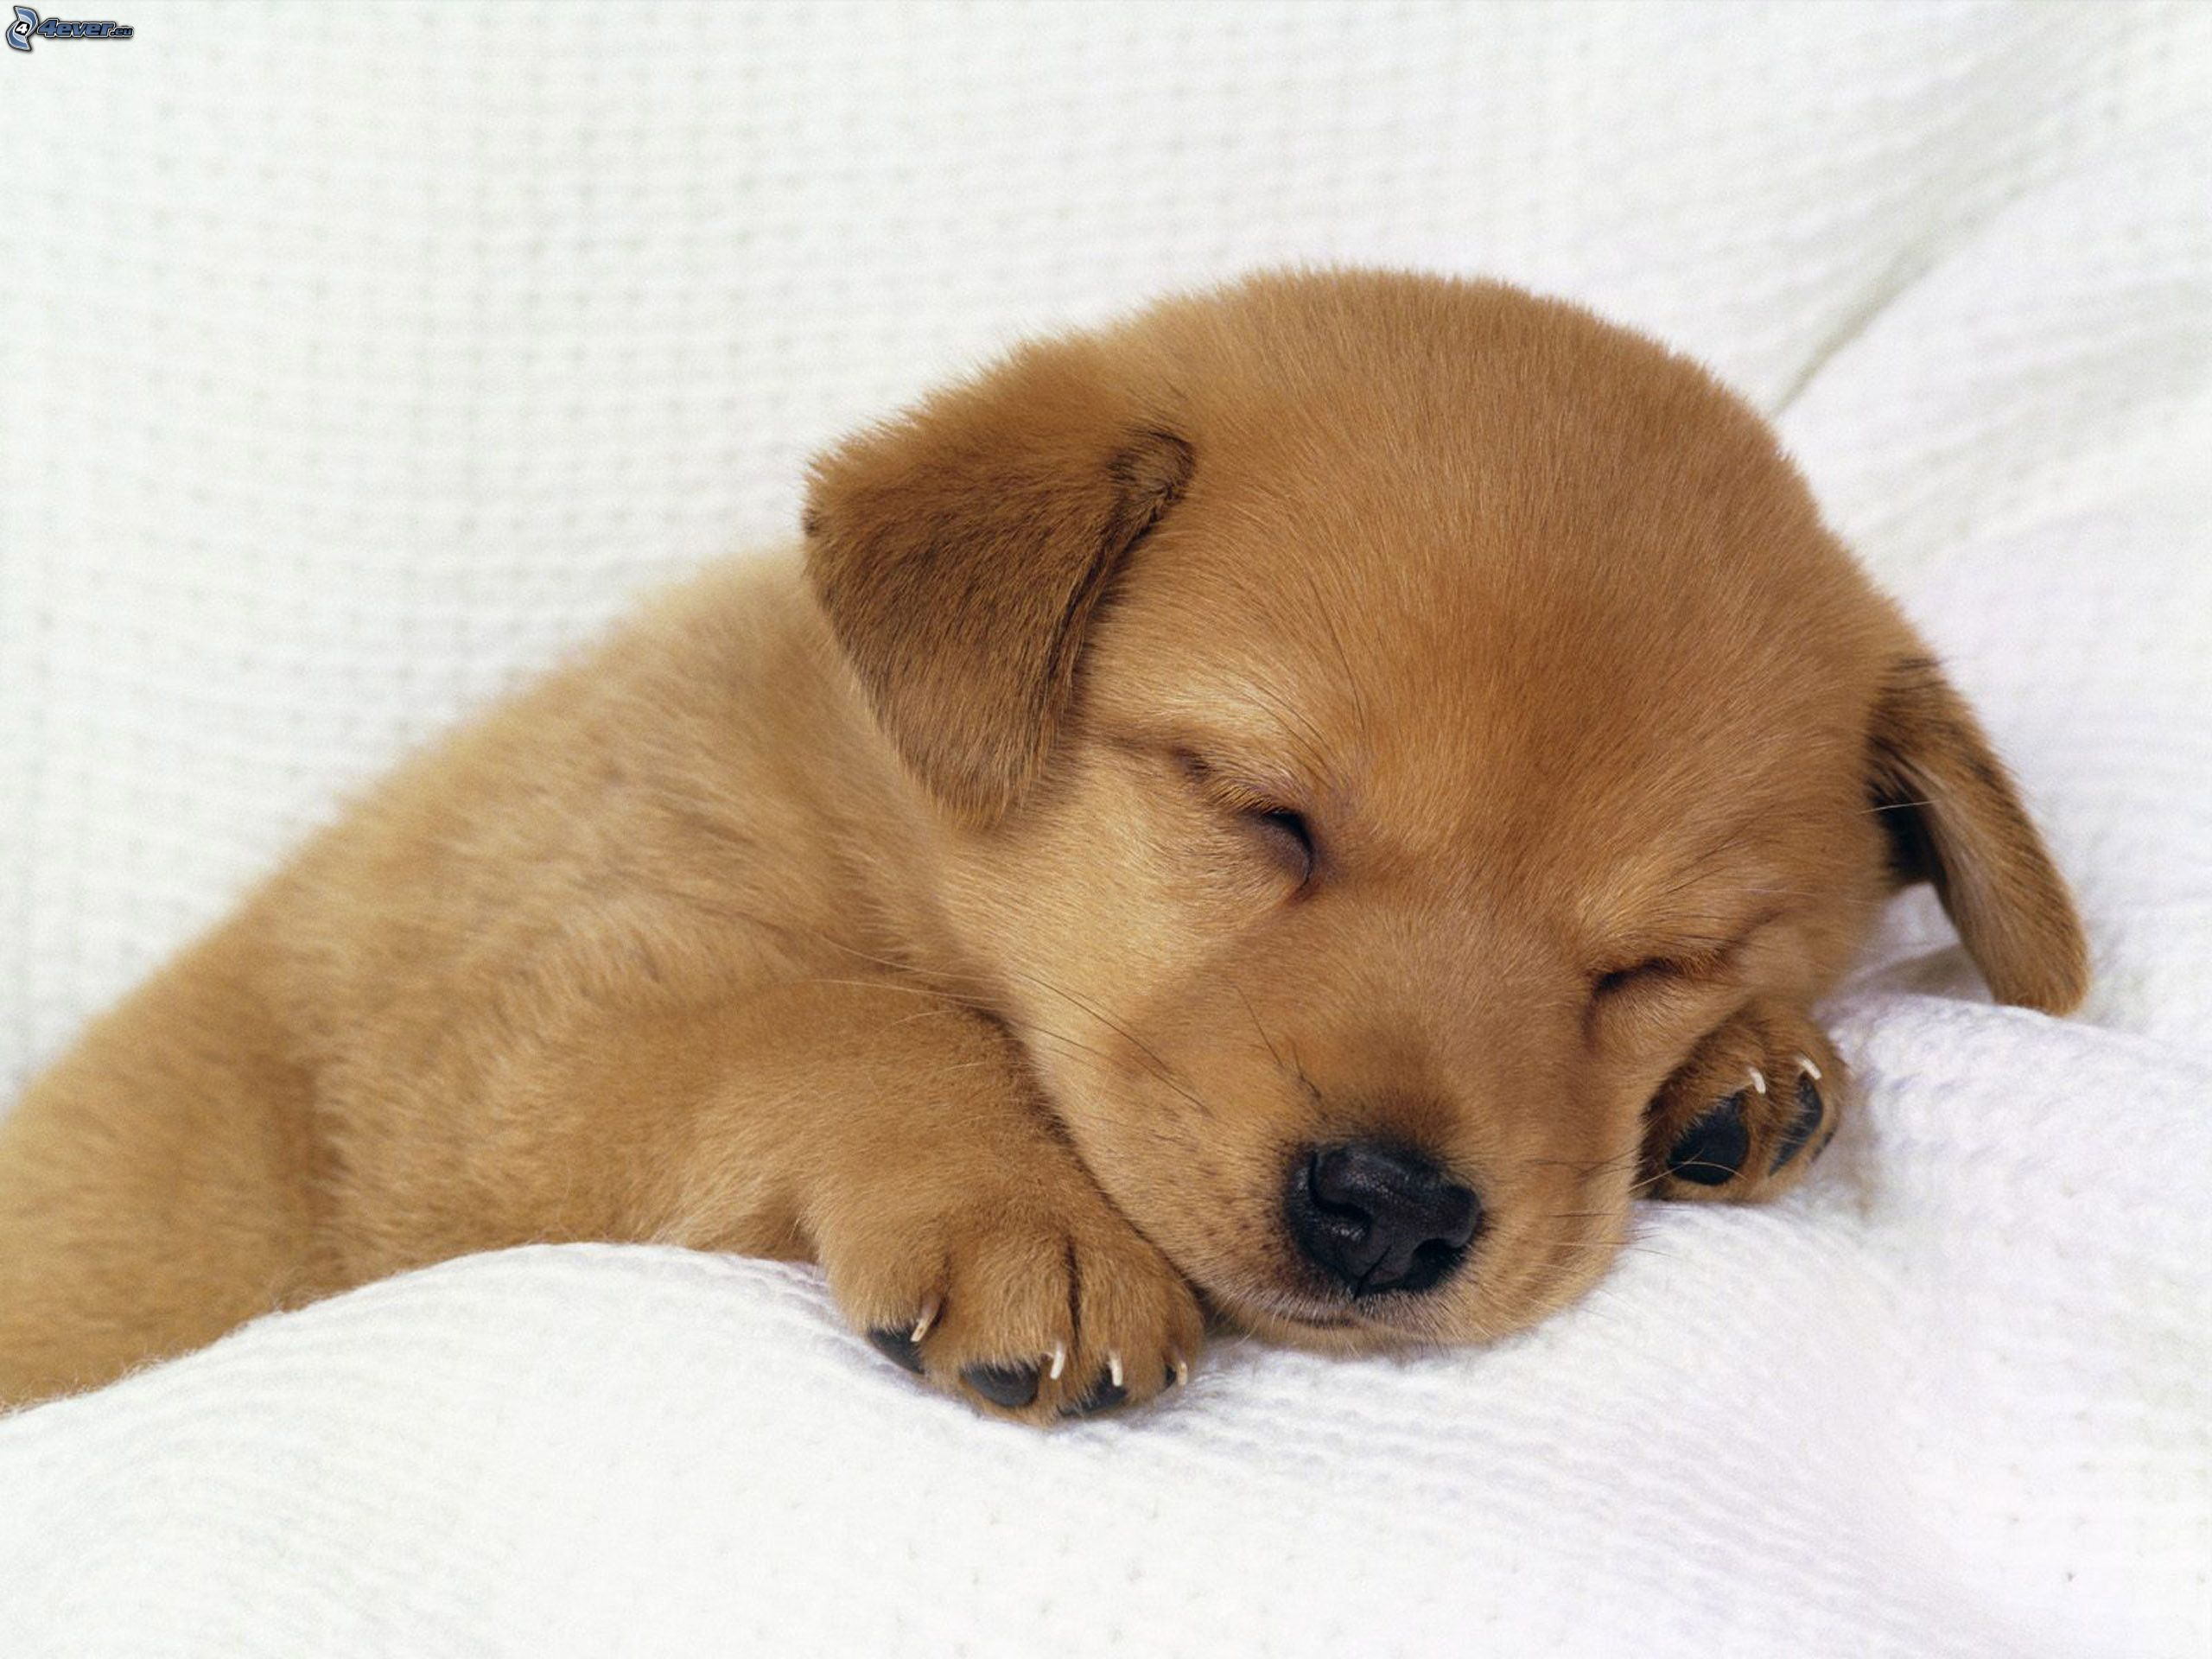 Cute Sleeping Golden Retriever Puppies - wallpaper. | Pictures of ...